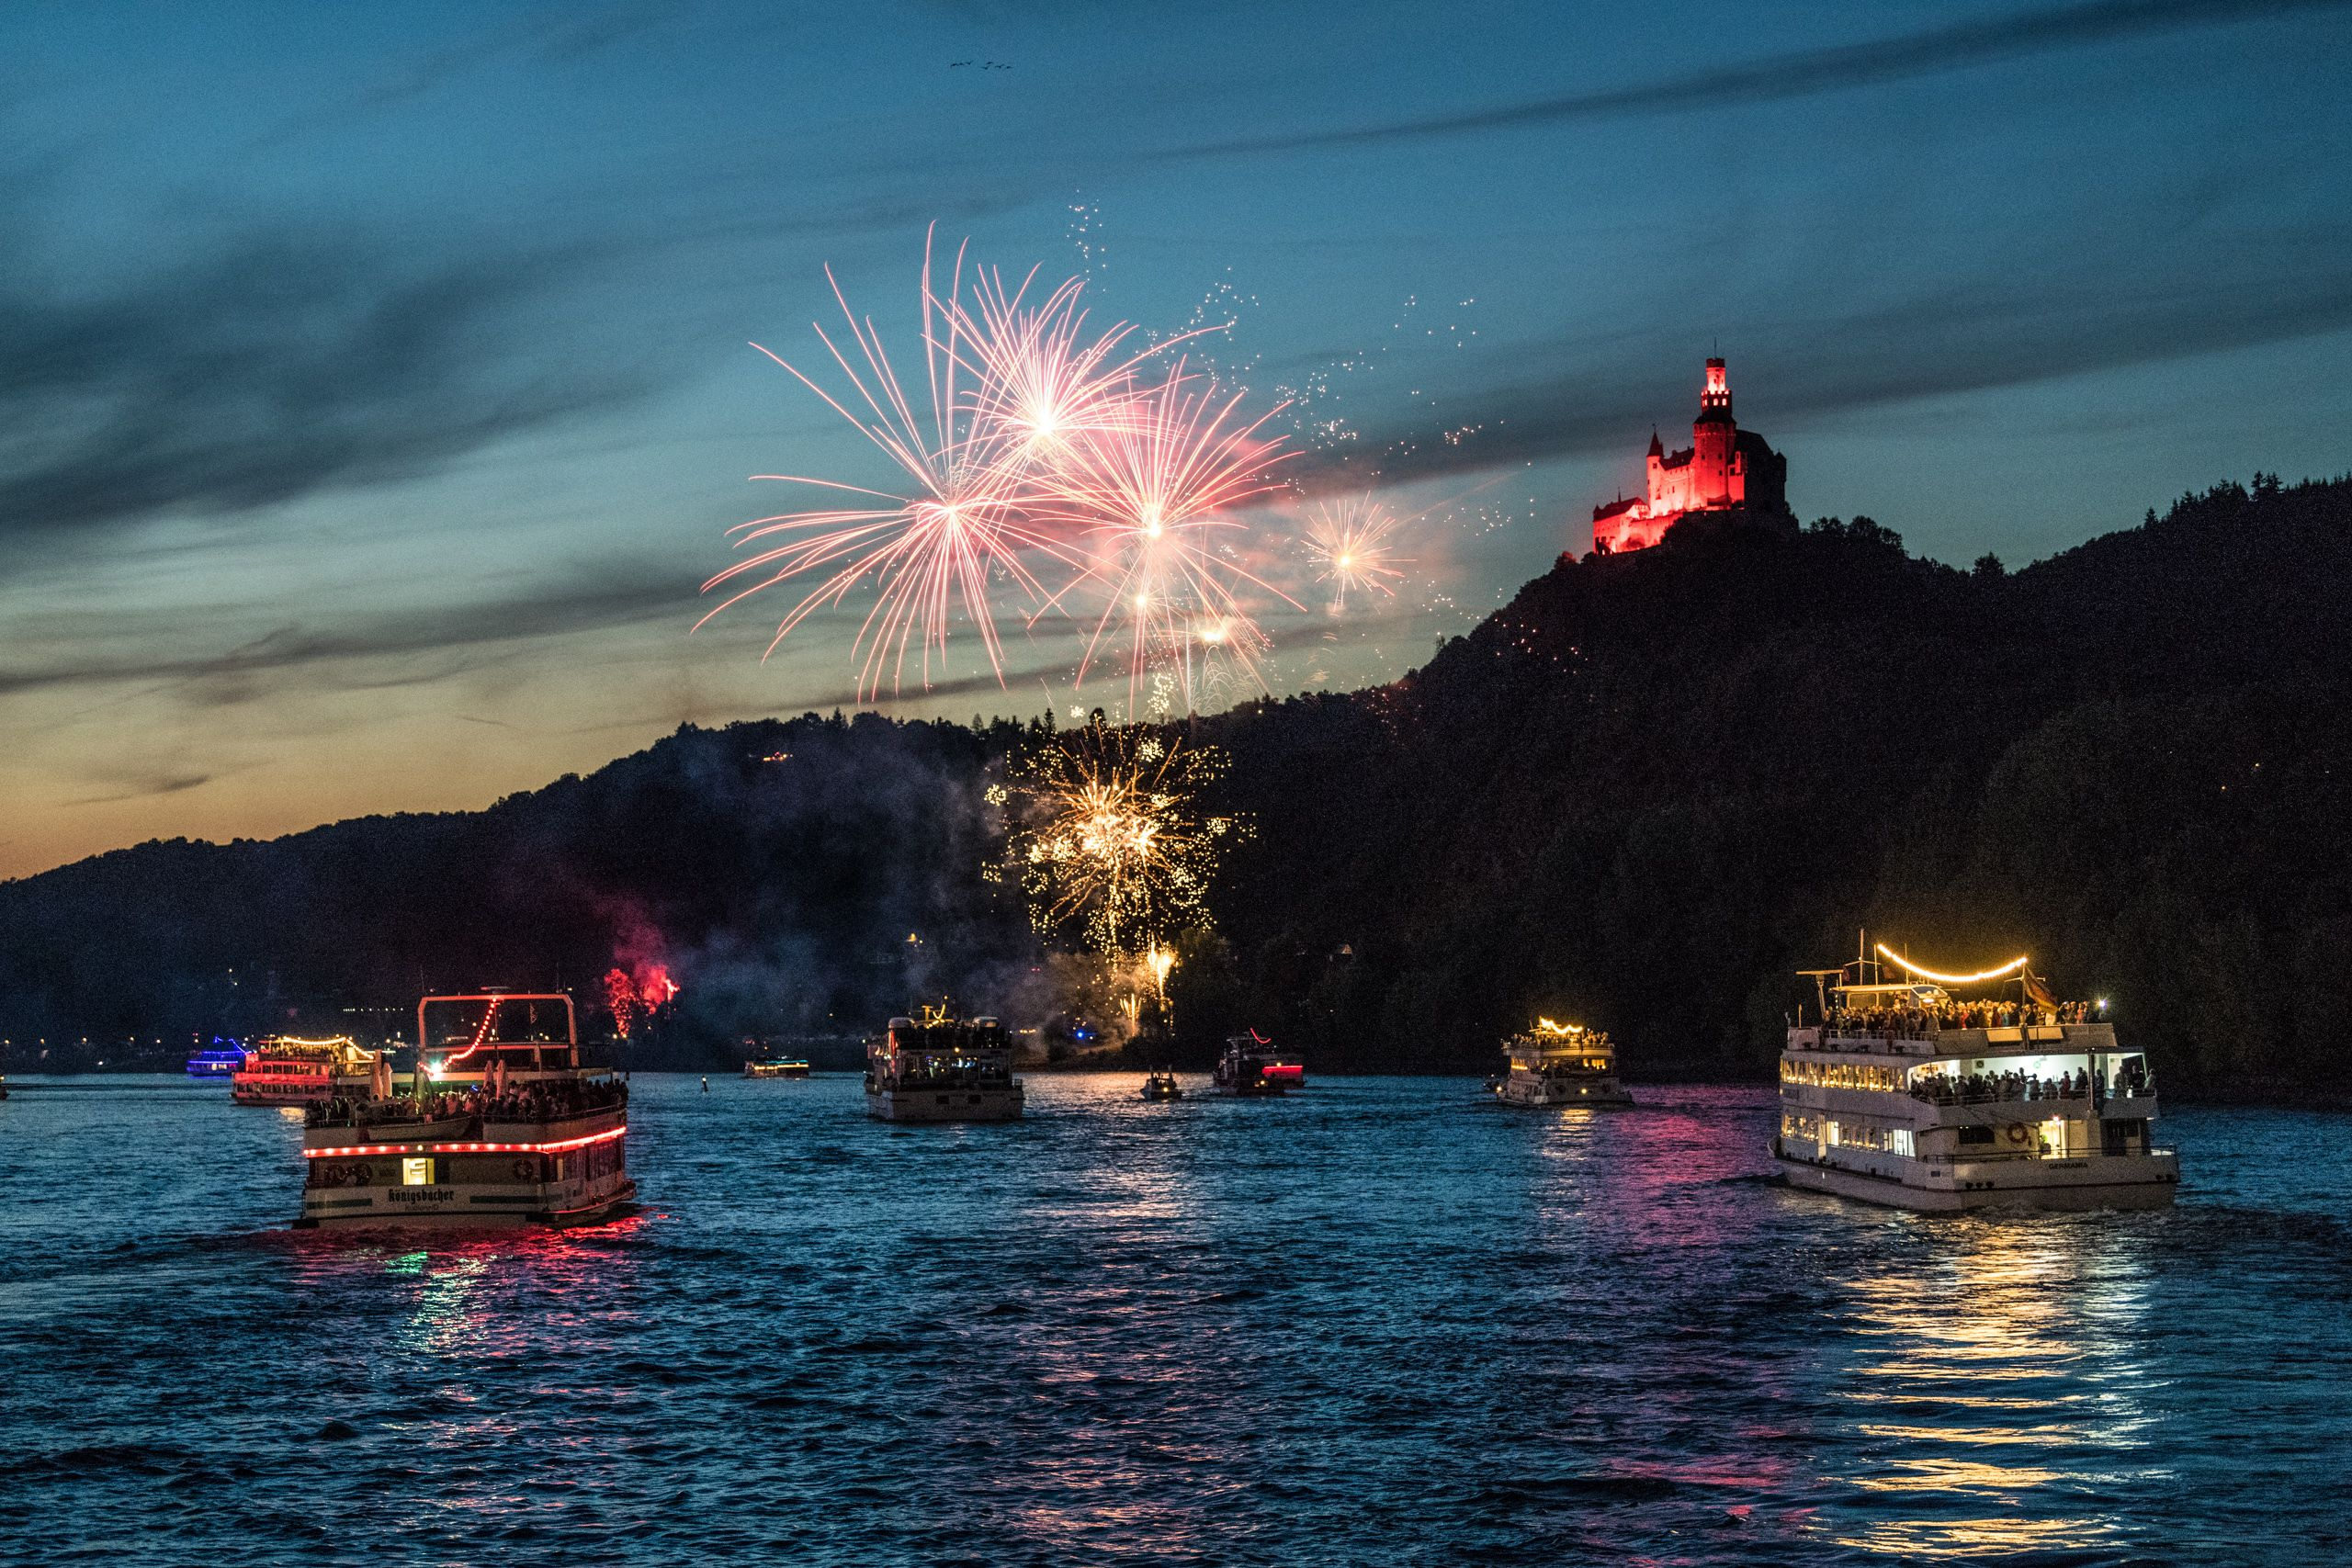 Rhine in flames fireworks at the Marksburg in Braubach, Romantic Rhine